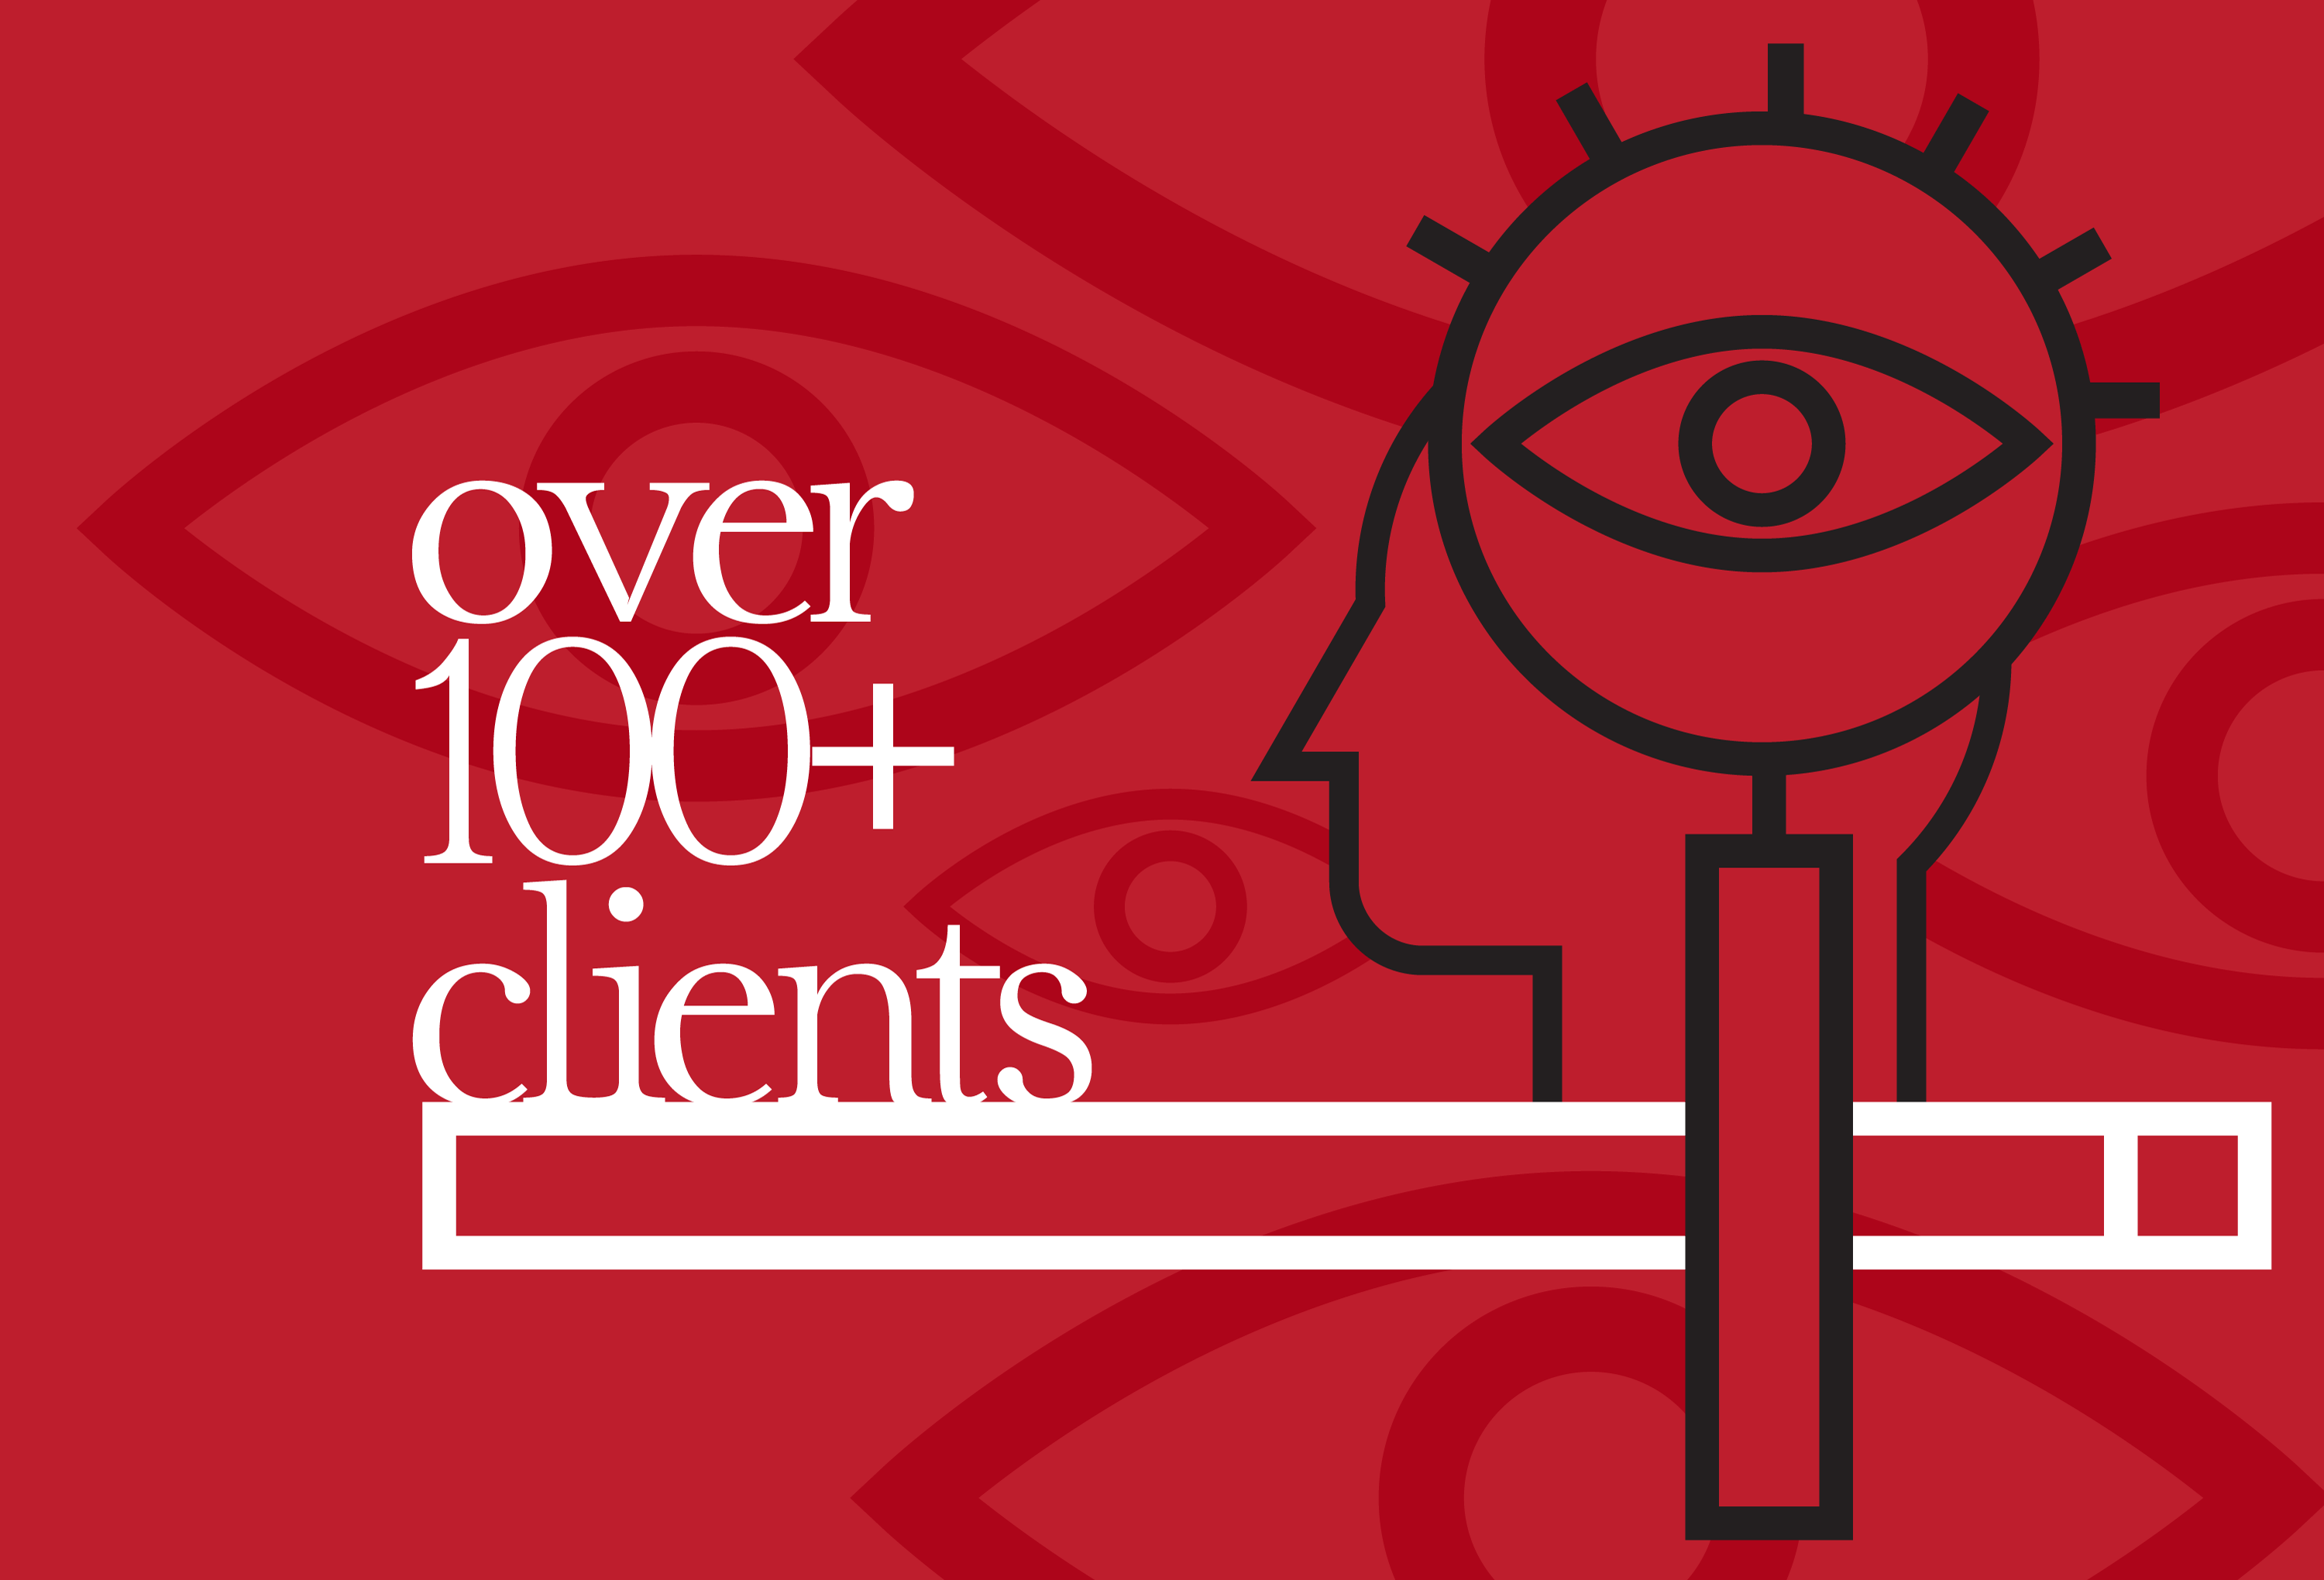 Autumn has worked with Over 100+ Clients